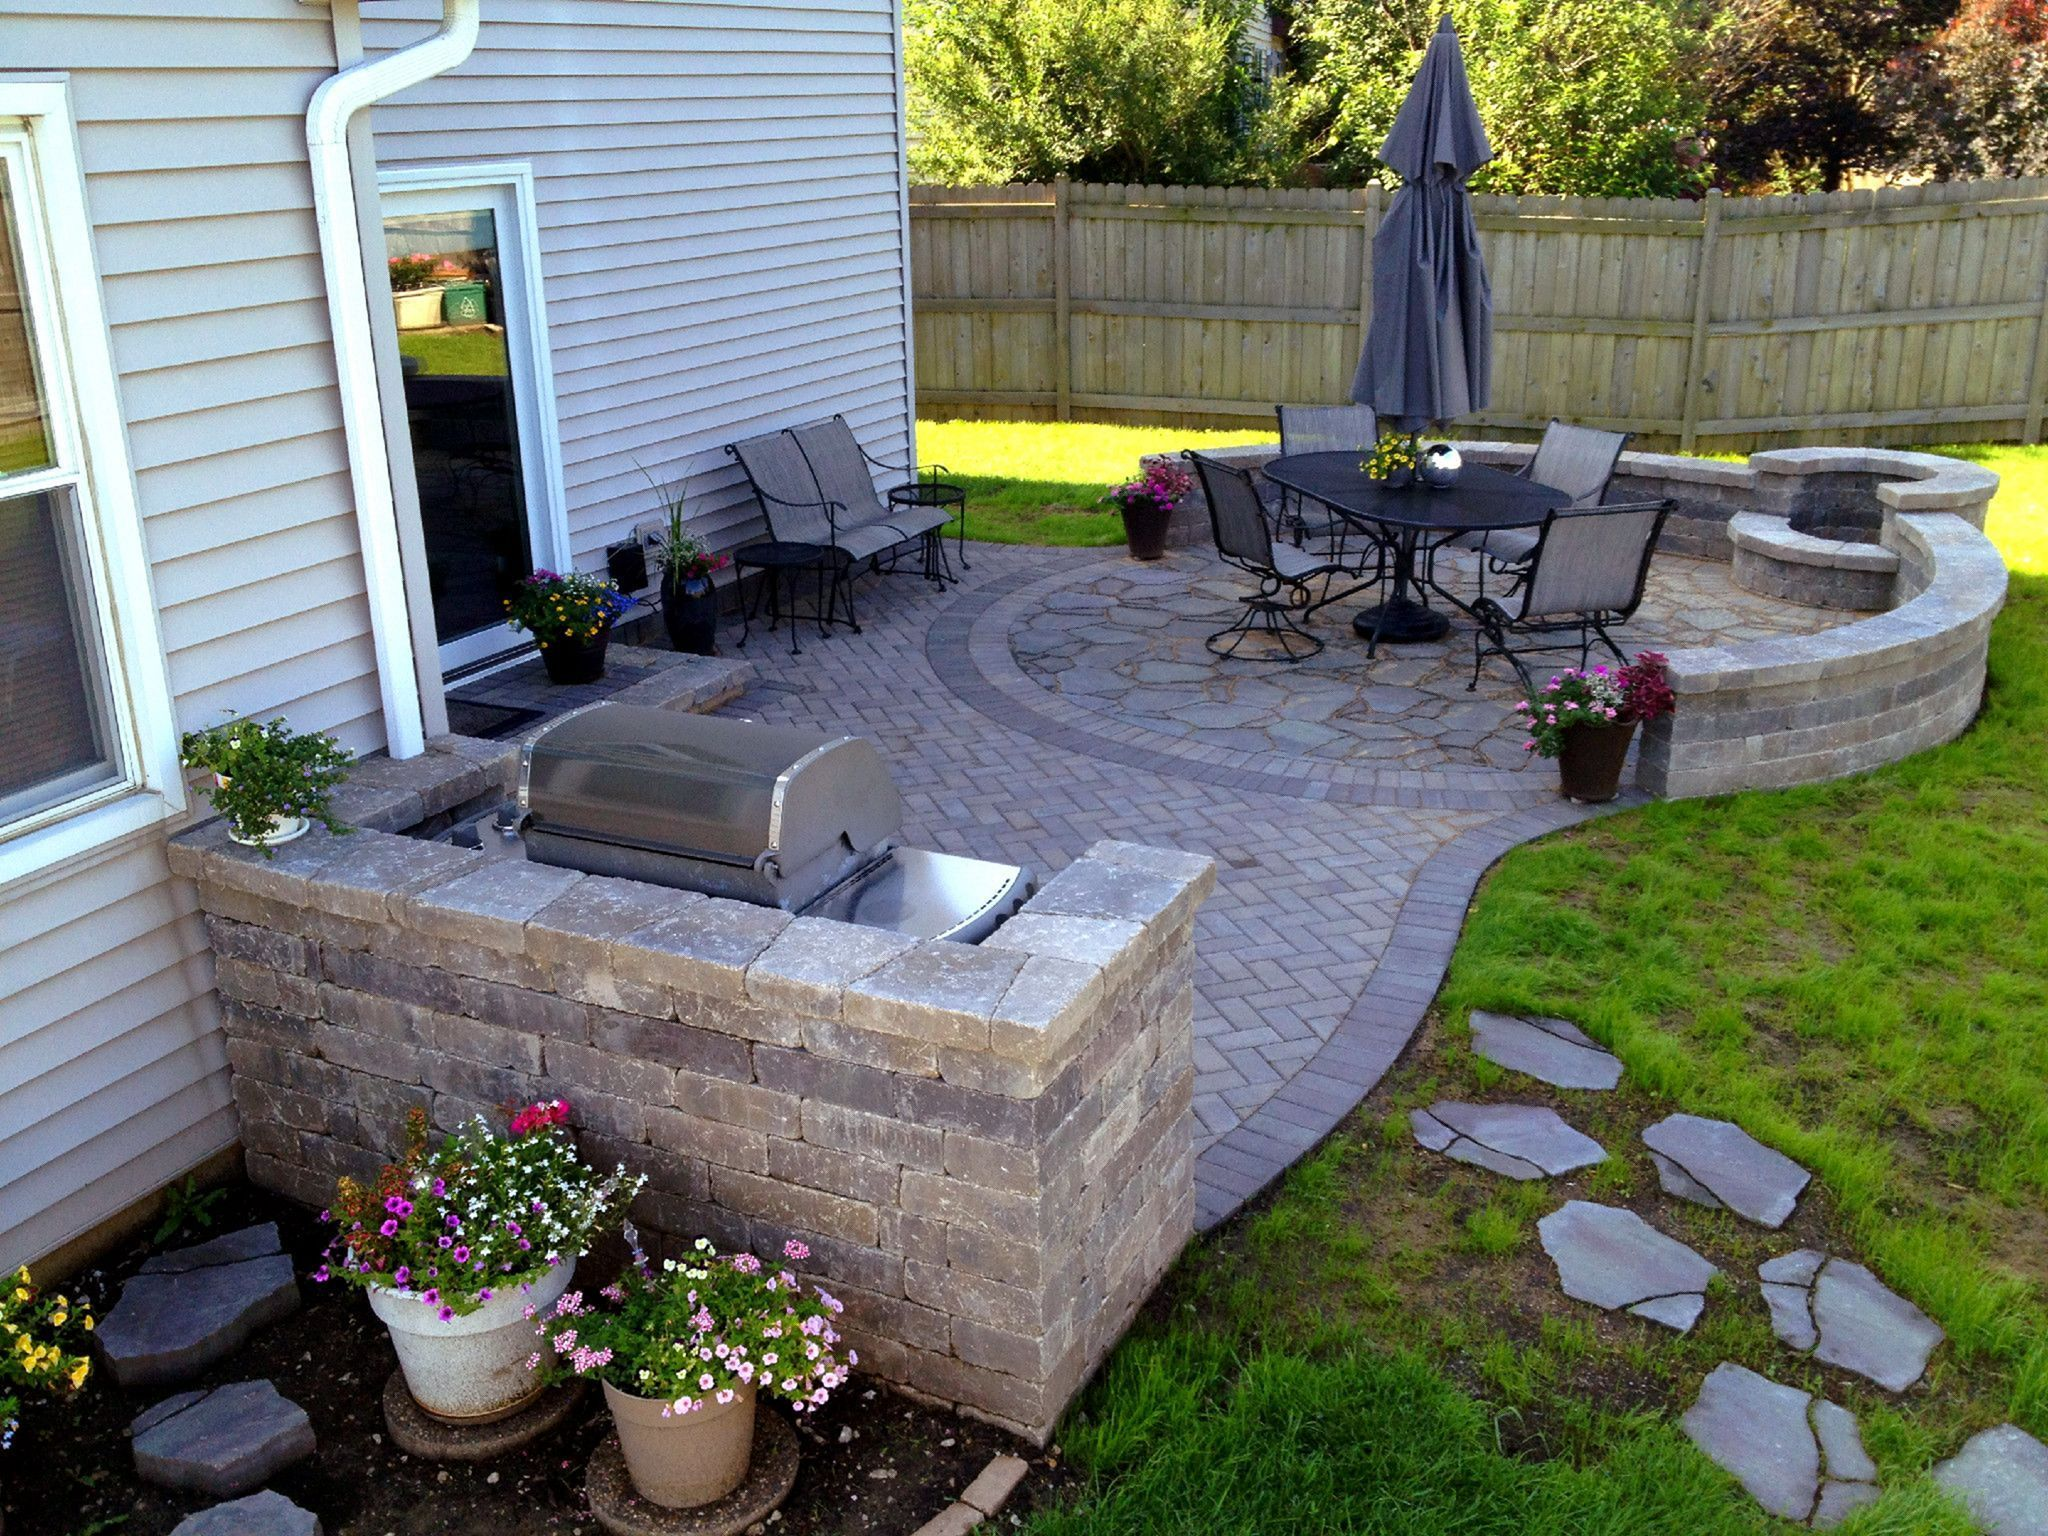 10 Beautiful Backyard Patio Design Ideas For Relax With Your Family #patiodesign